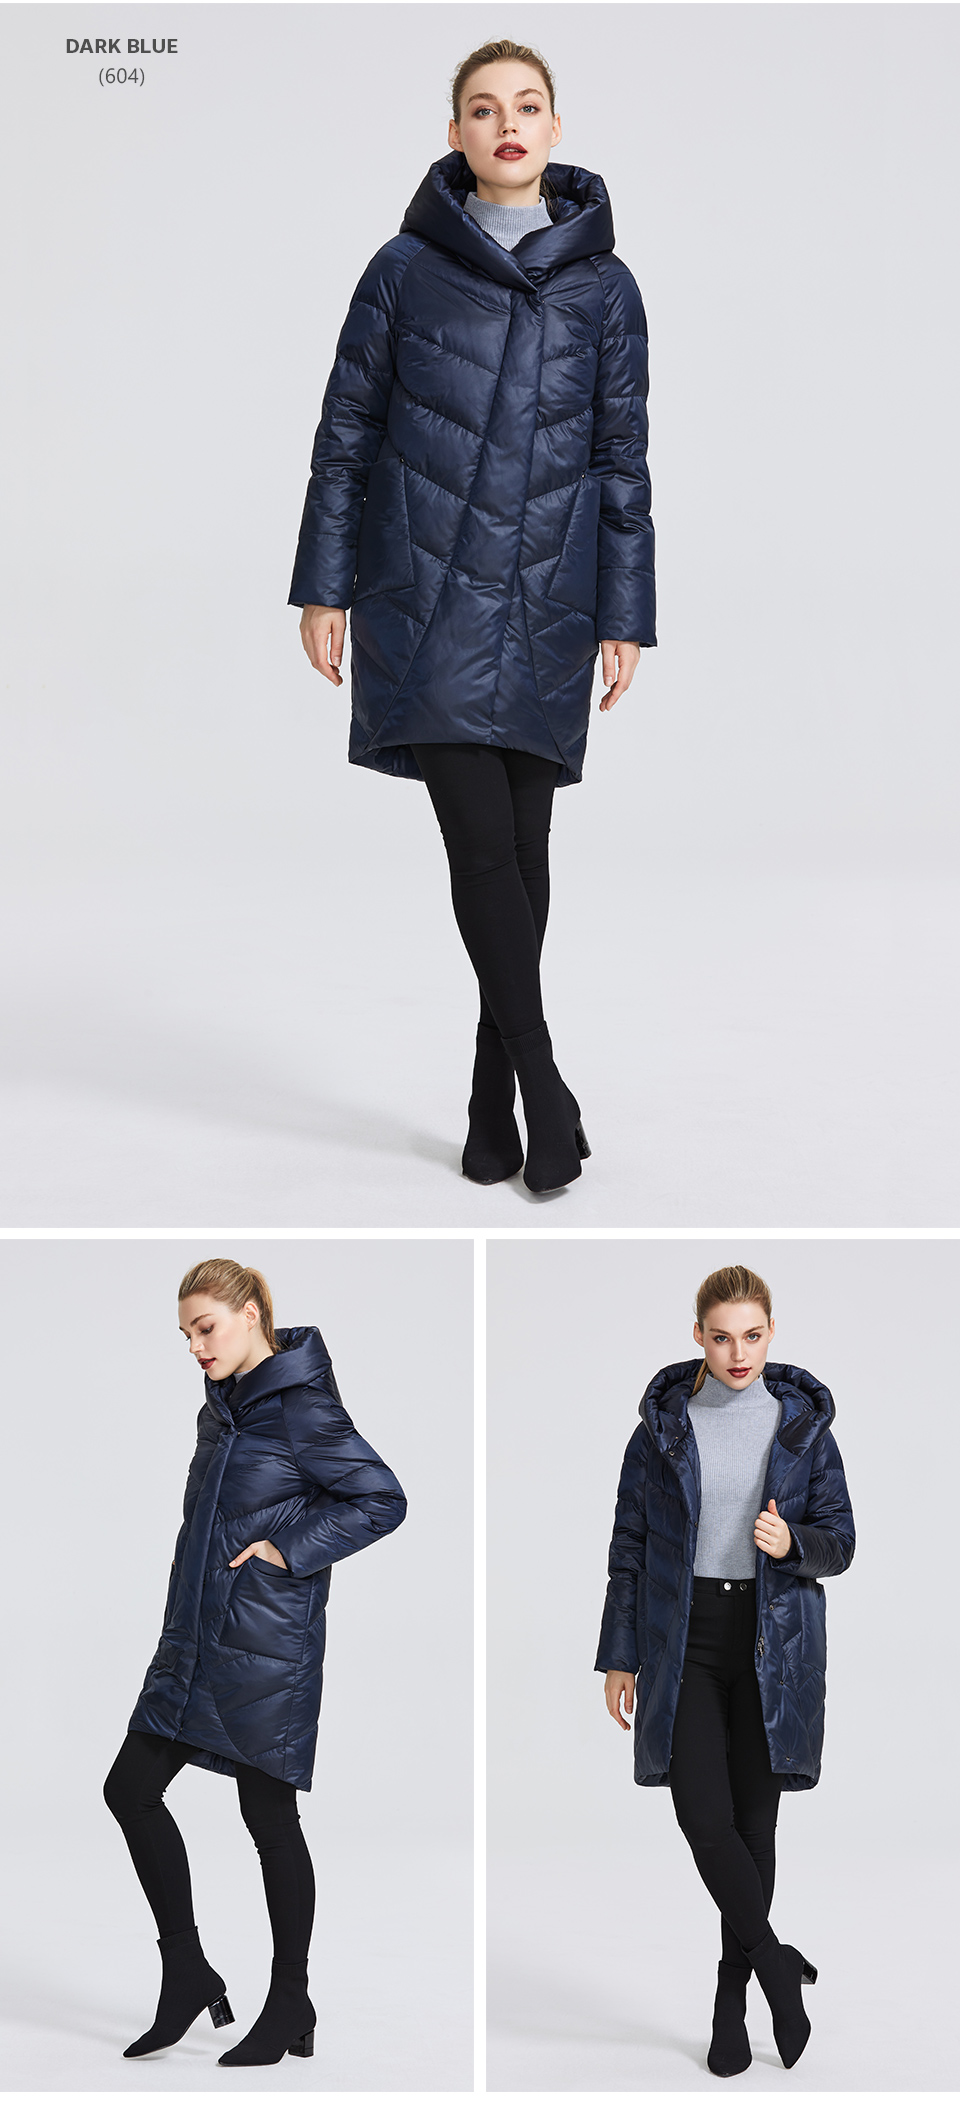 MIEGOFCE 19 Winter Jacket Women's Collection Warm Jacket With Unusual Design and Colors Winter Coats Gives Charm and Elegance 8